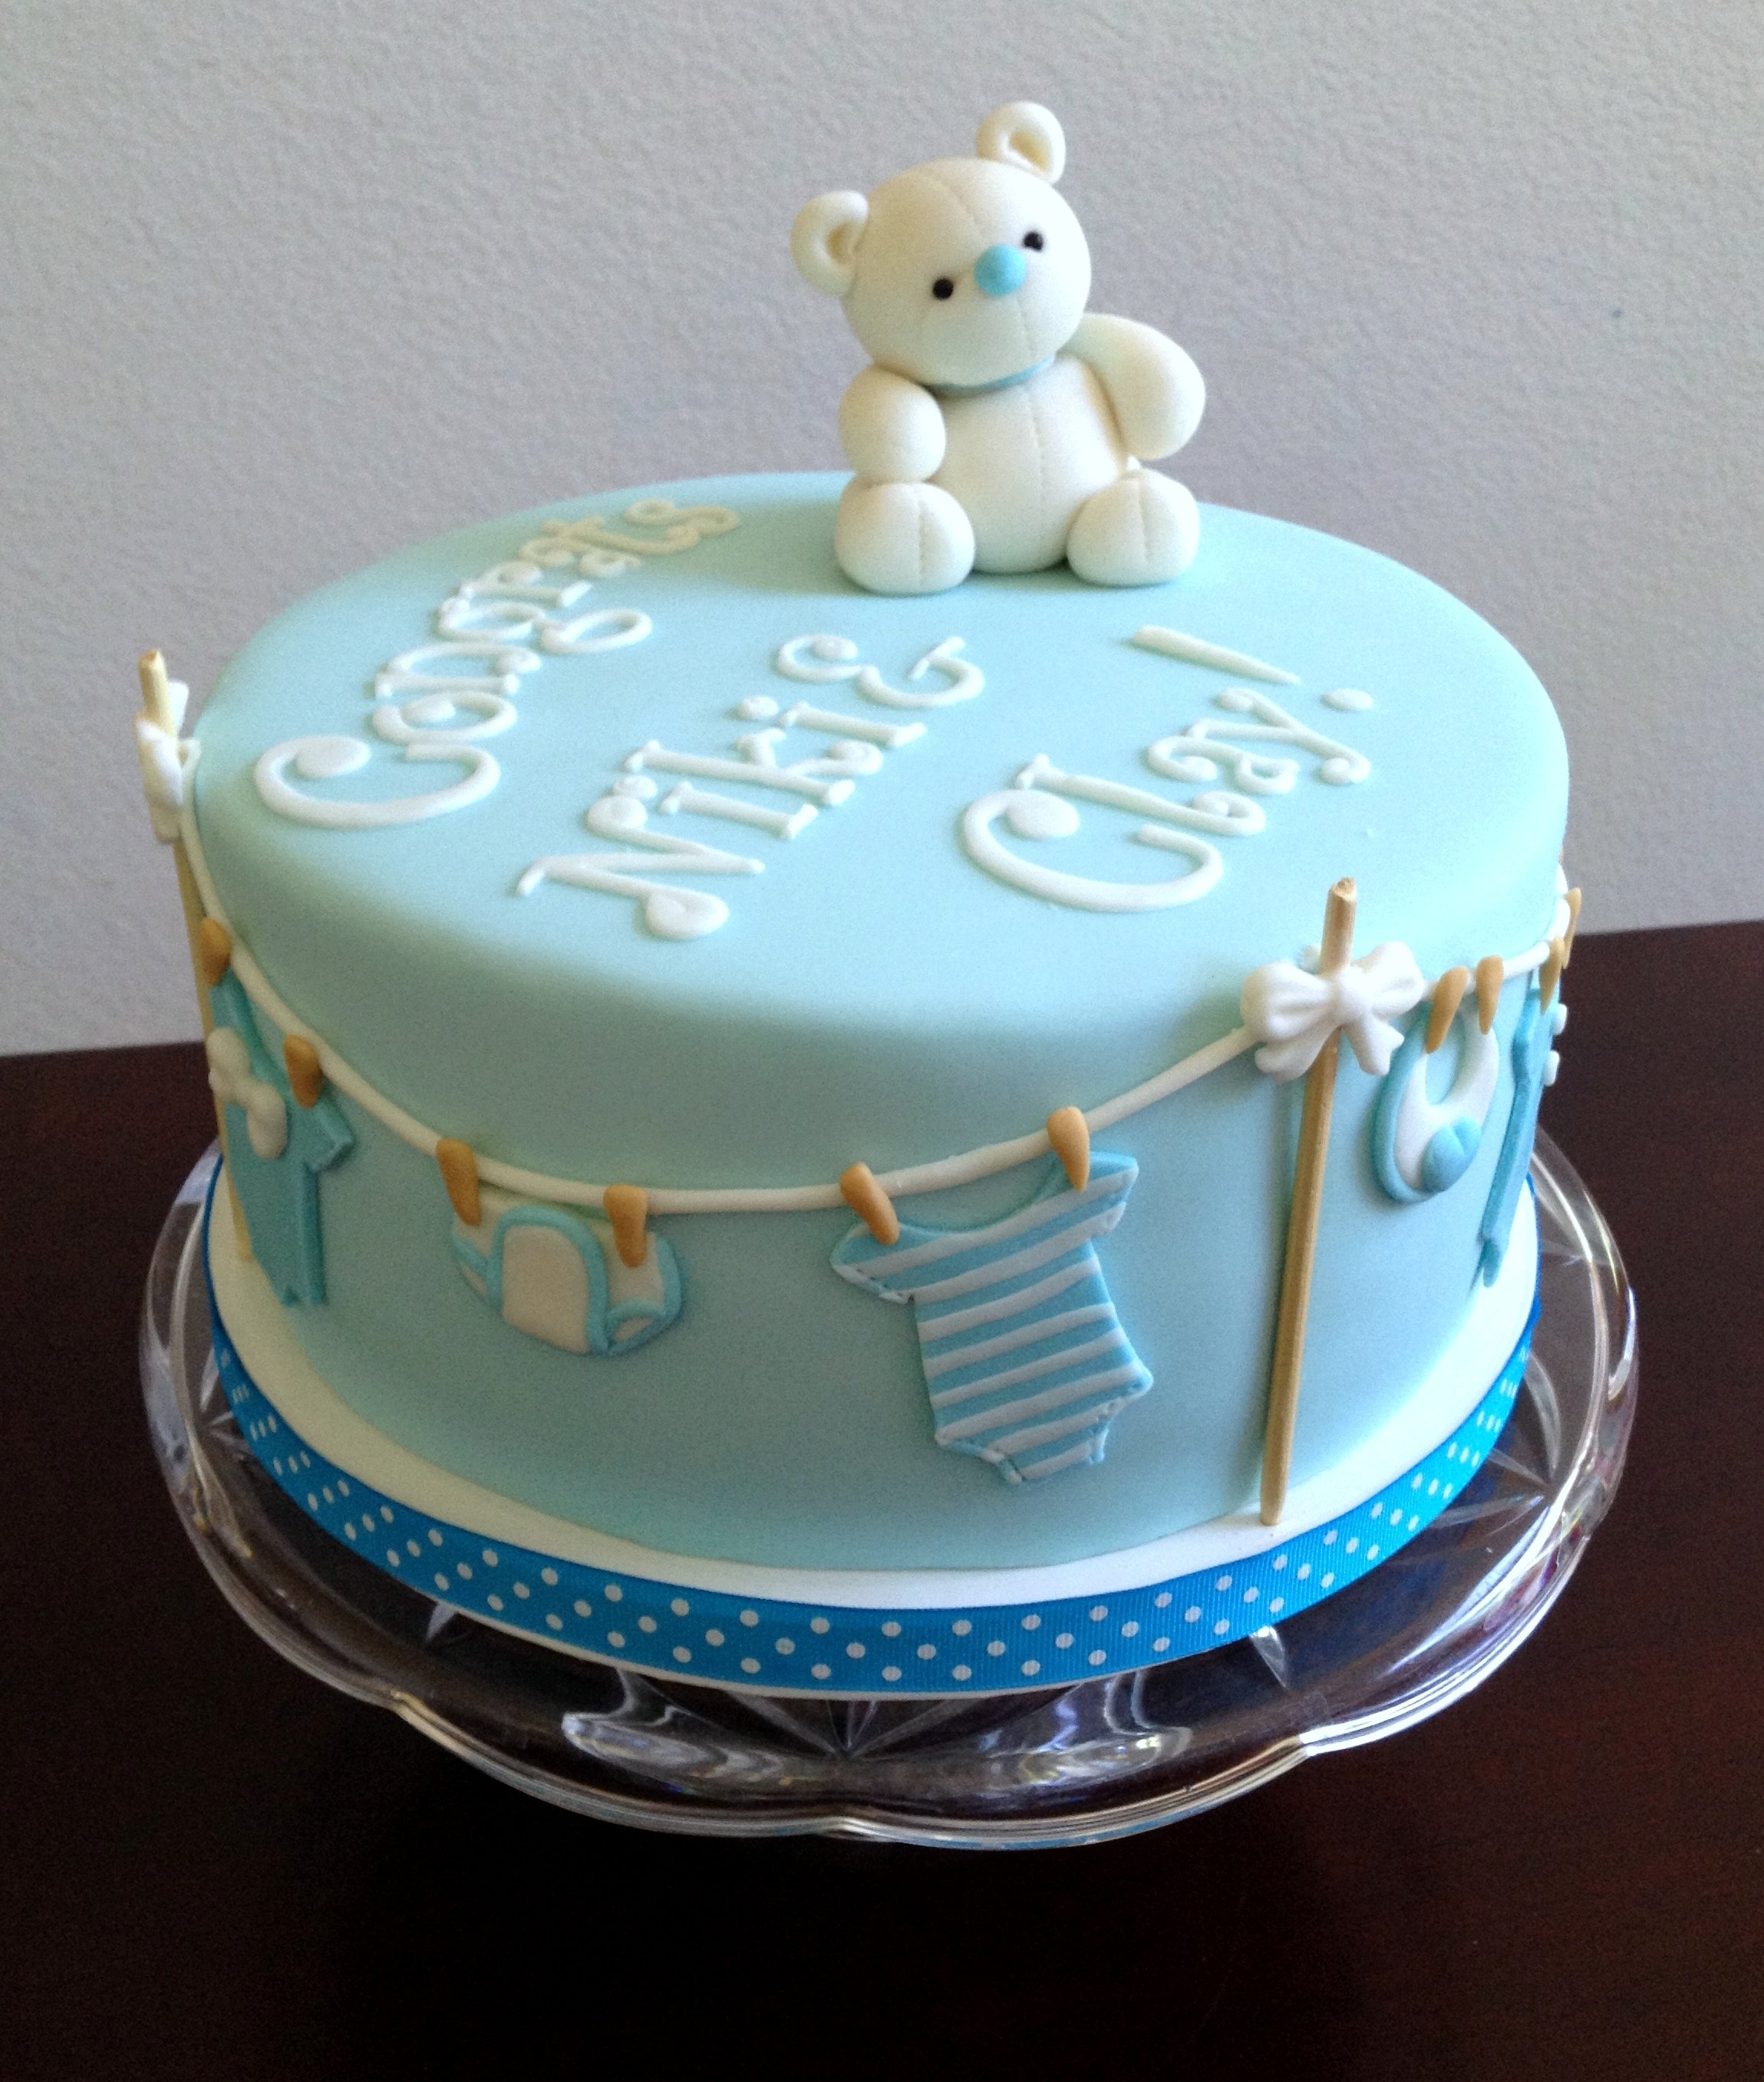 Trendy Baby Shower Themes: 10 Trendy Baby Shower Cake Ideas For Boys